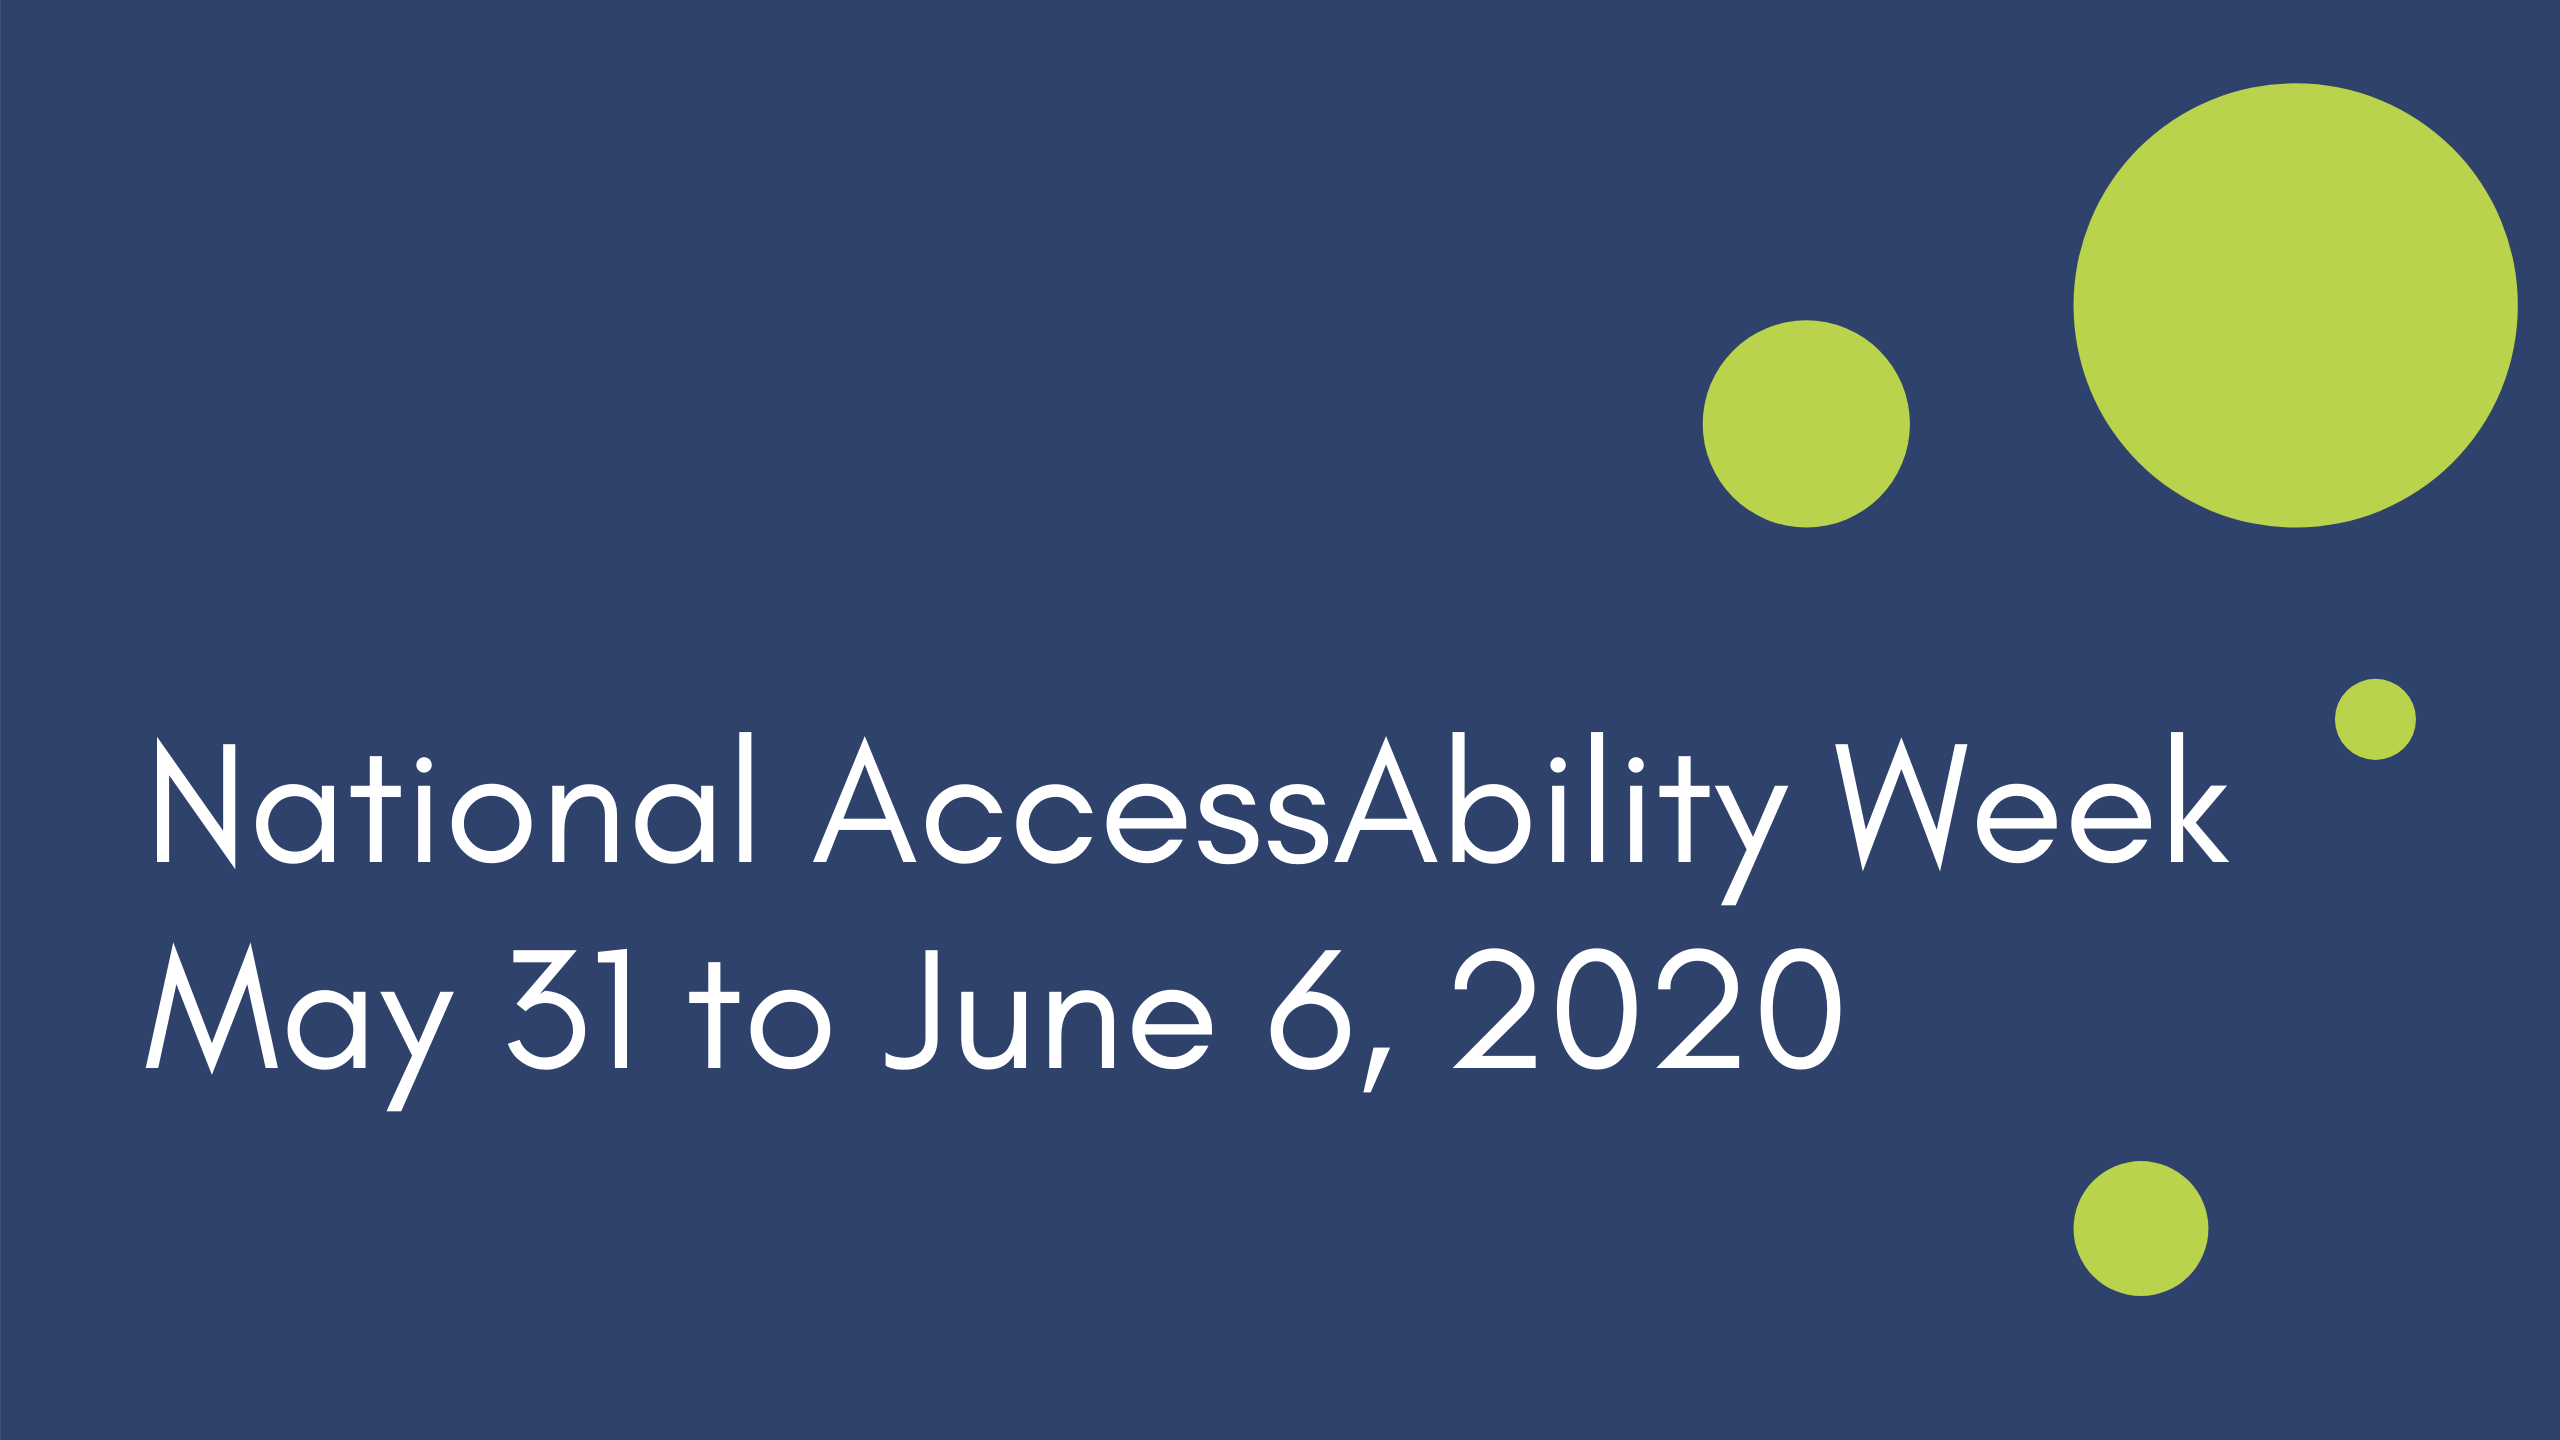 National AccessAbility Week, May 31 To June 6, 2020